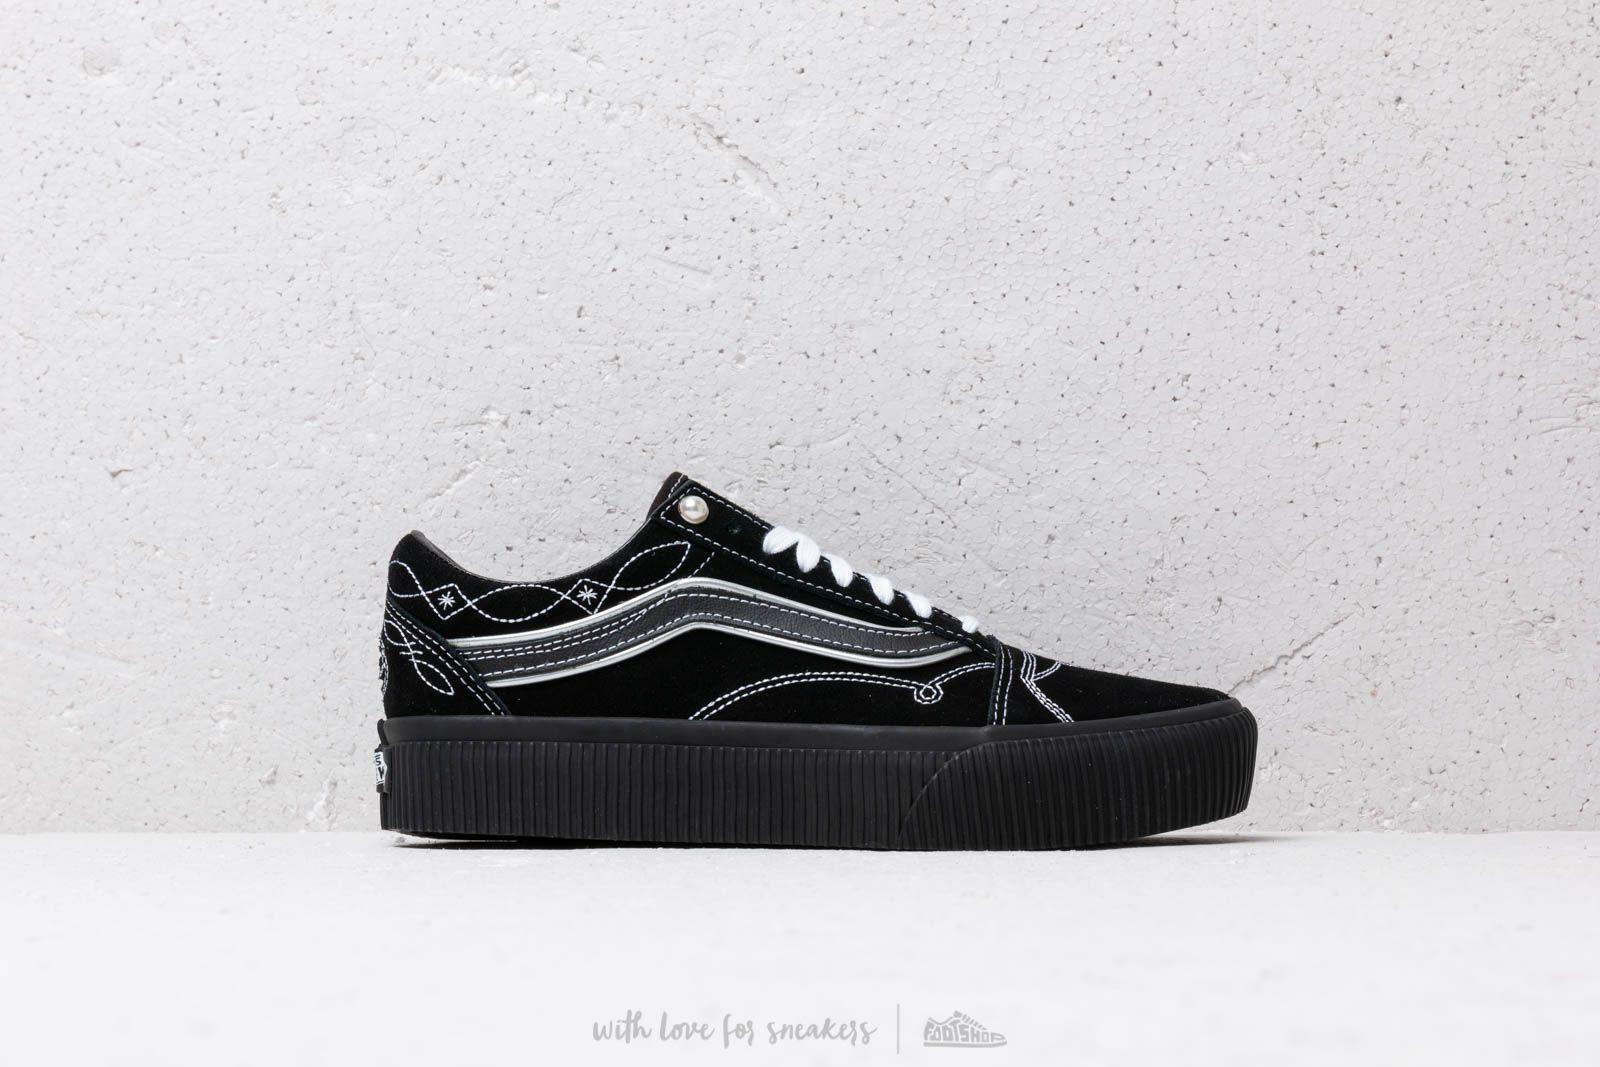 81e7d3c2c0c Lyst - Vans Old Skool Platform (pearly Punk) Black  Black in Black ...